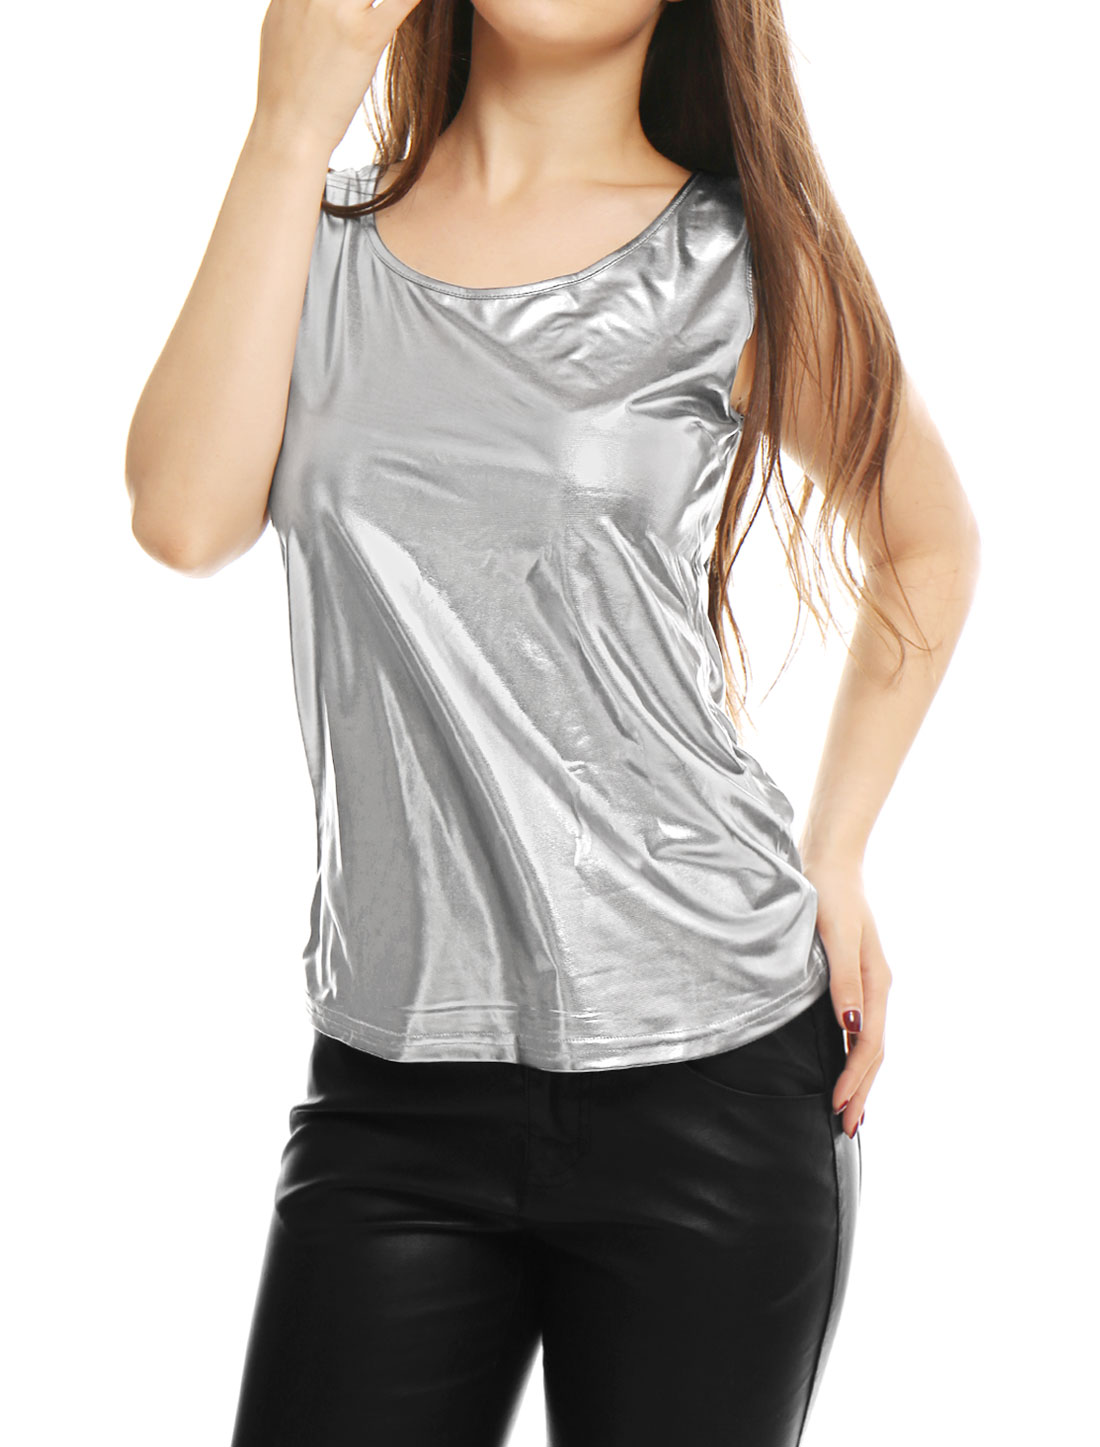 Woman U Neck Sleeveless Stretch Metallic Tank Top Silver S